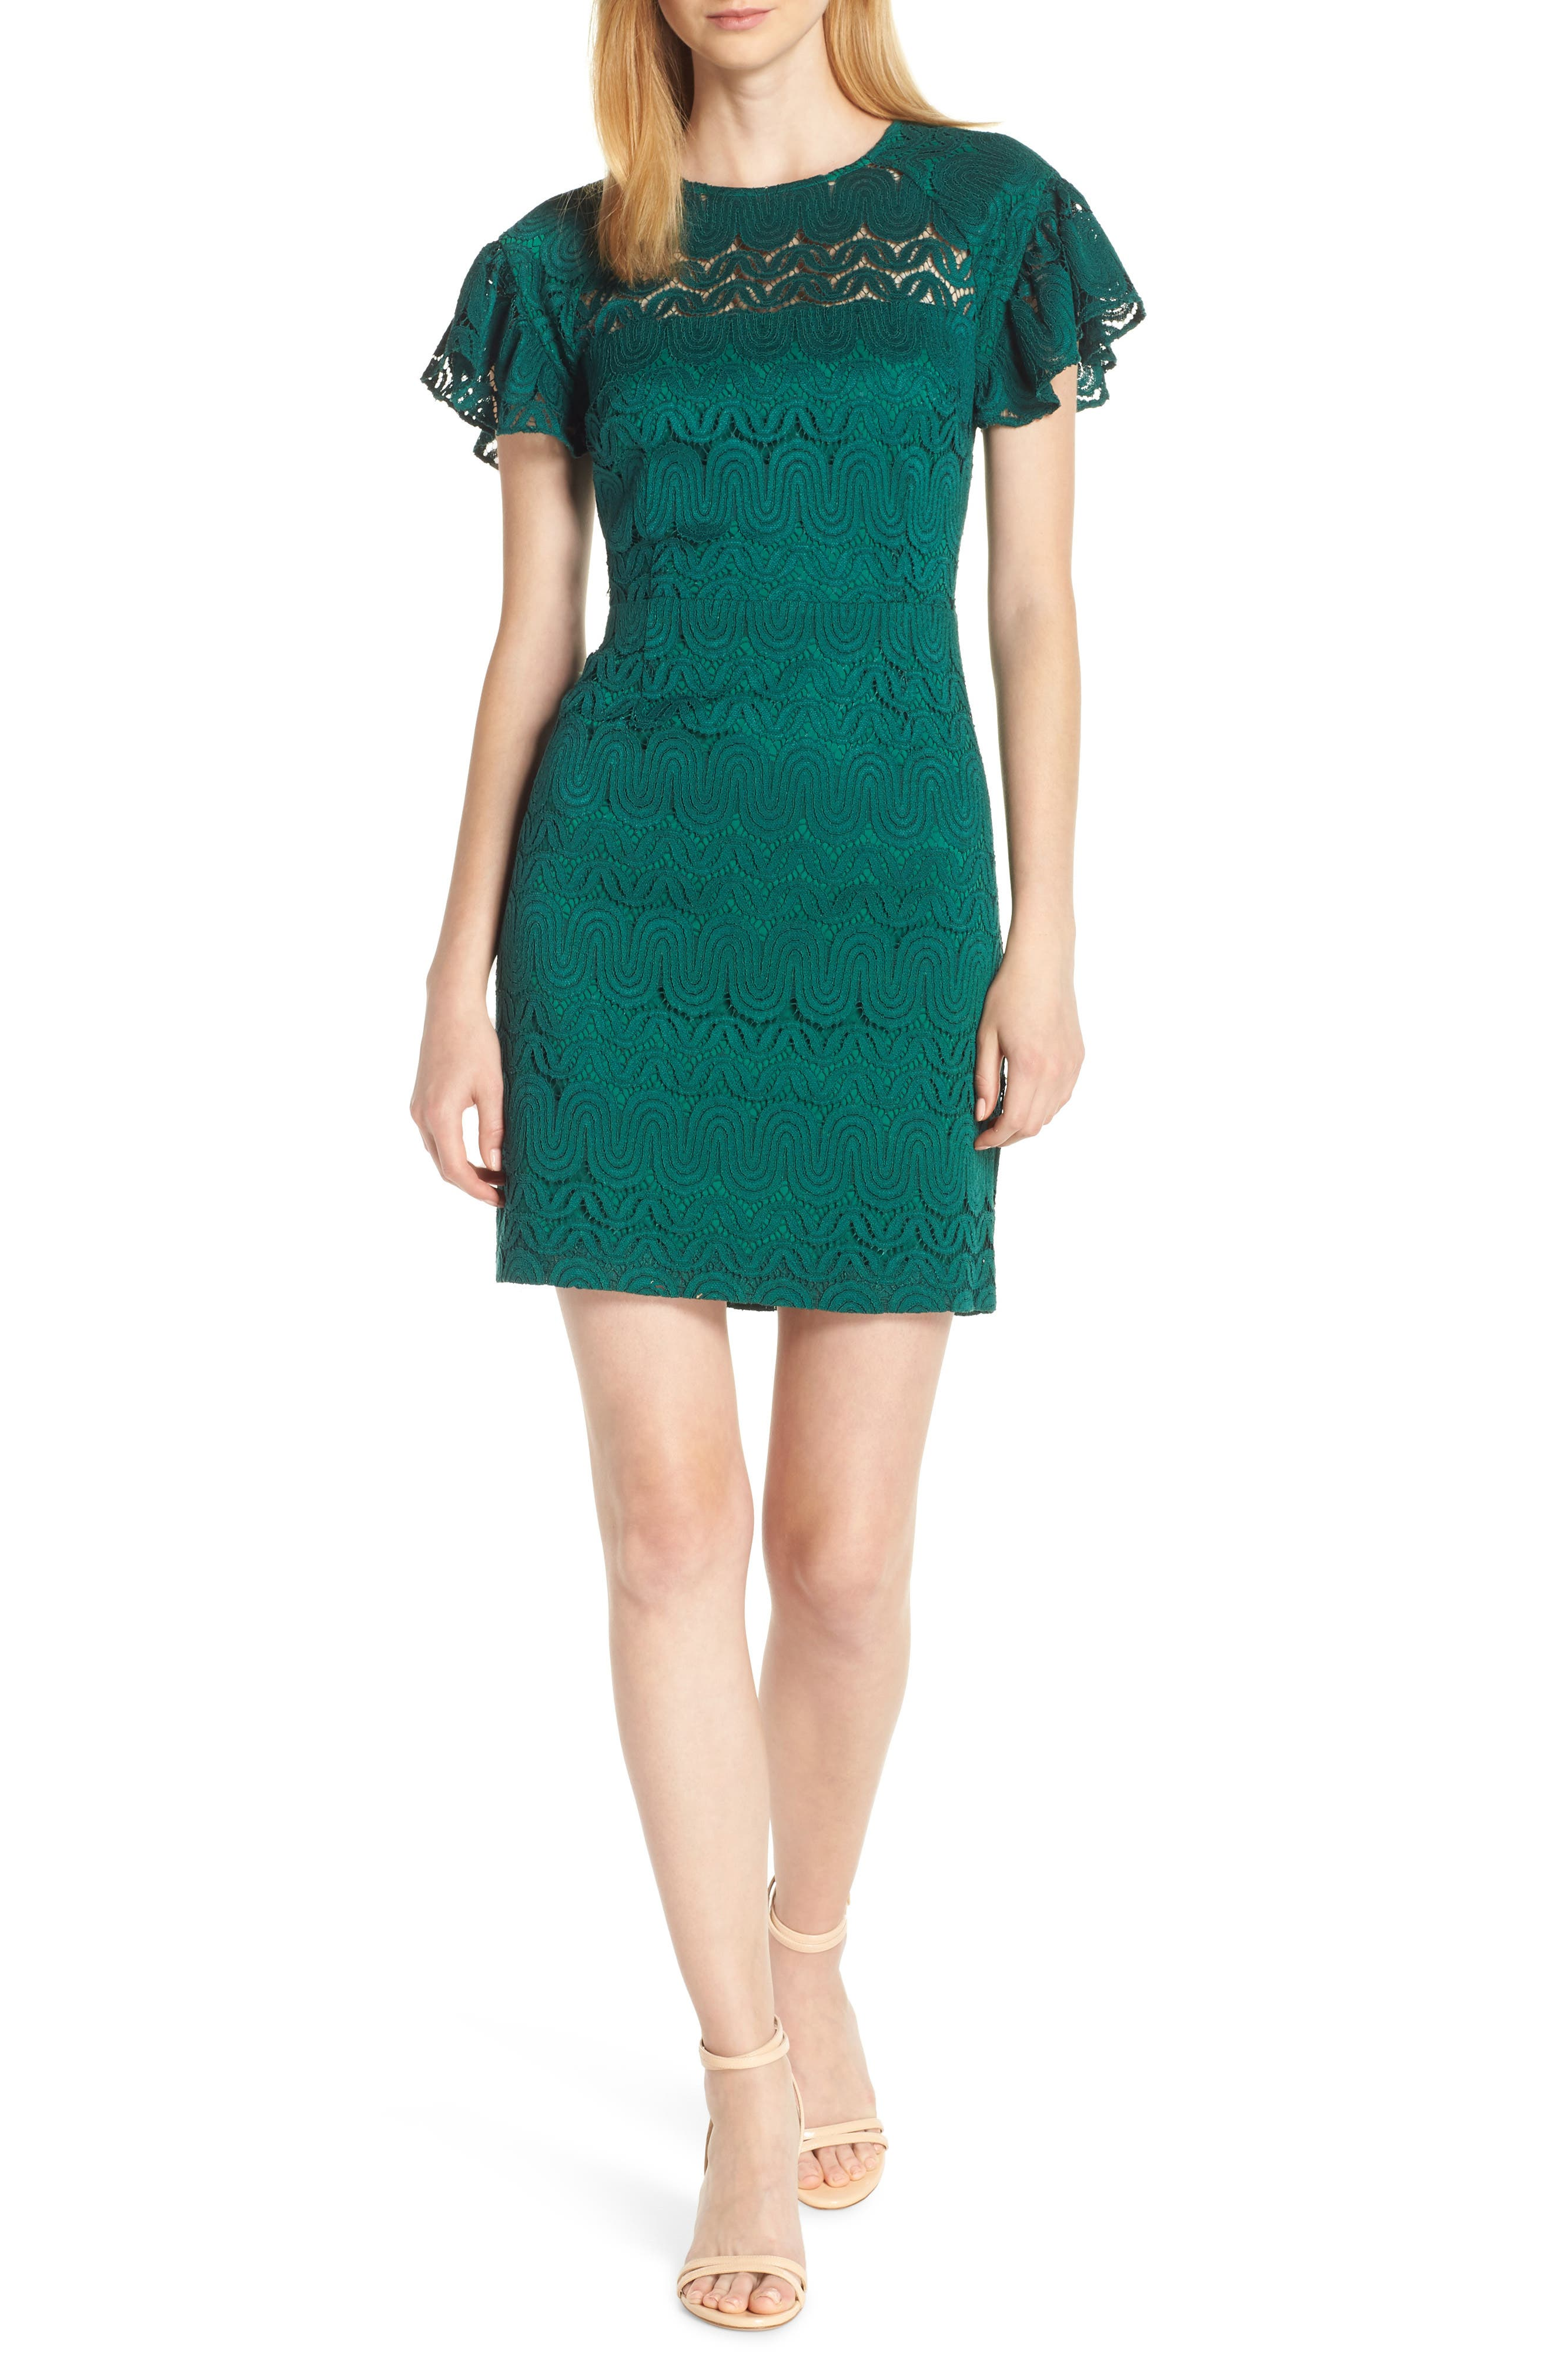 Mai Tai Lace Dress,                             Main thumbnail 1, color,                             EMERALD